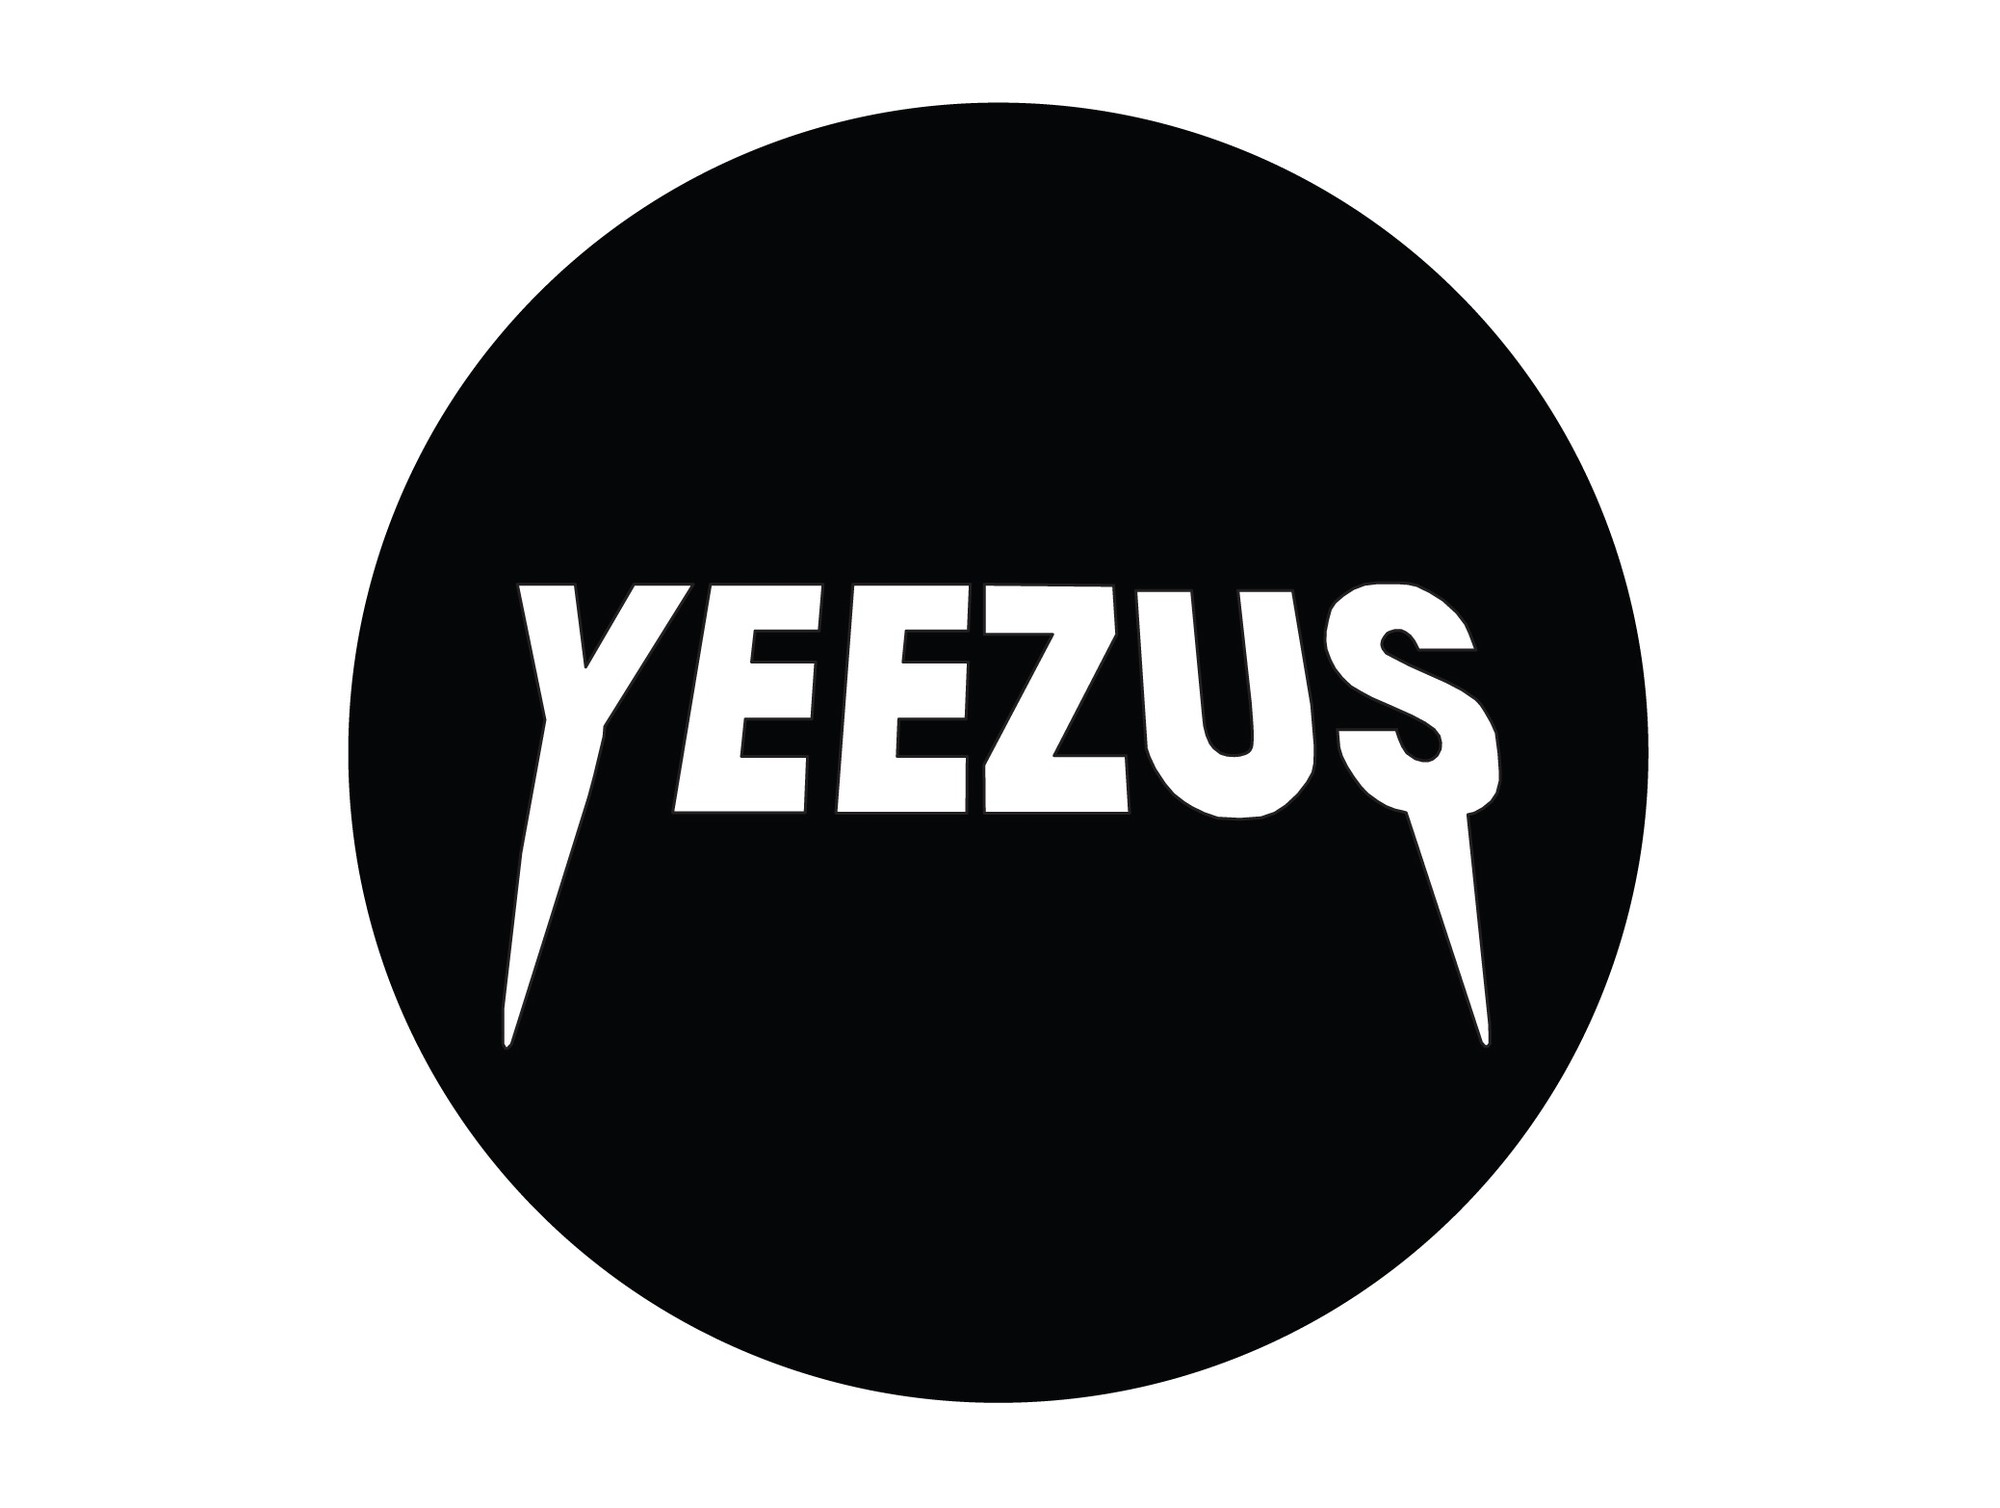 INTERIORS: The Yeezus Tour, Courtesy of INTERIORS Journal